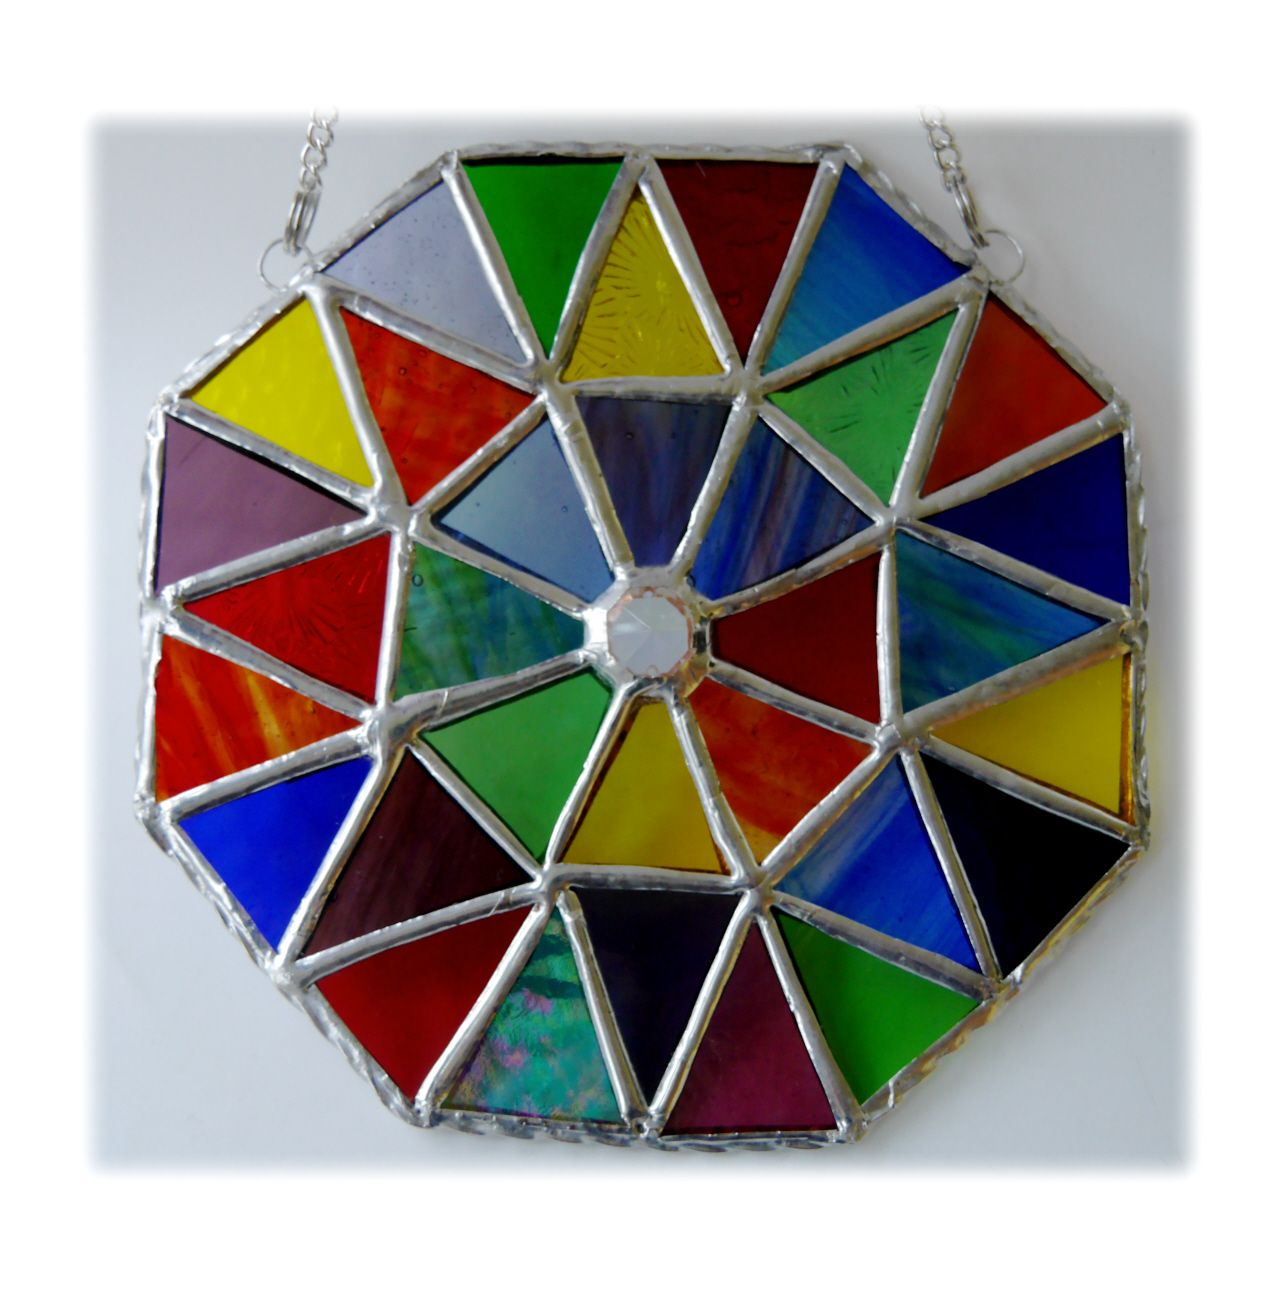 Rainbow Patchwork Octagon 002 #1903 FREE 27.50